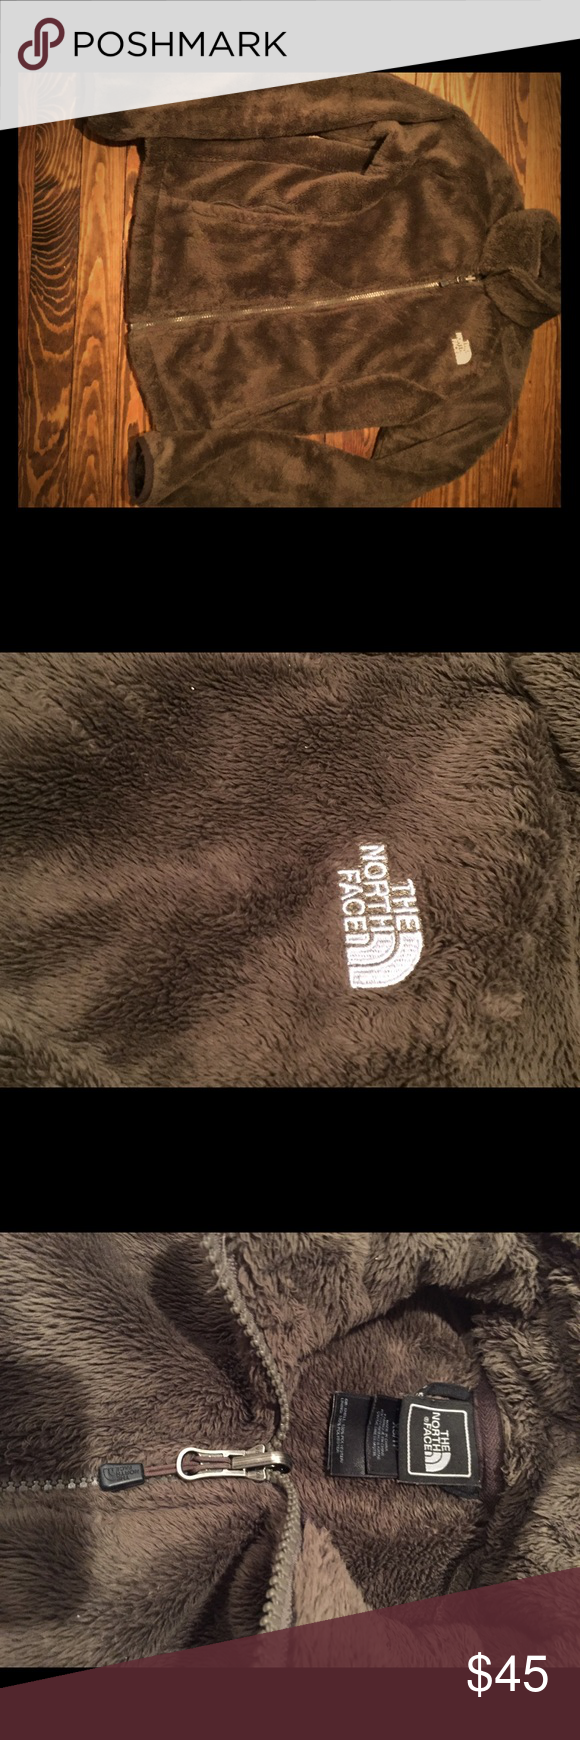 North Face brown jacket Soft, brown North Face. Great condition The North Face Jackets & Coats